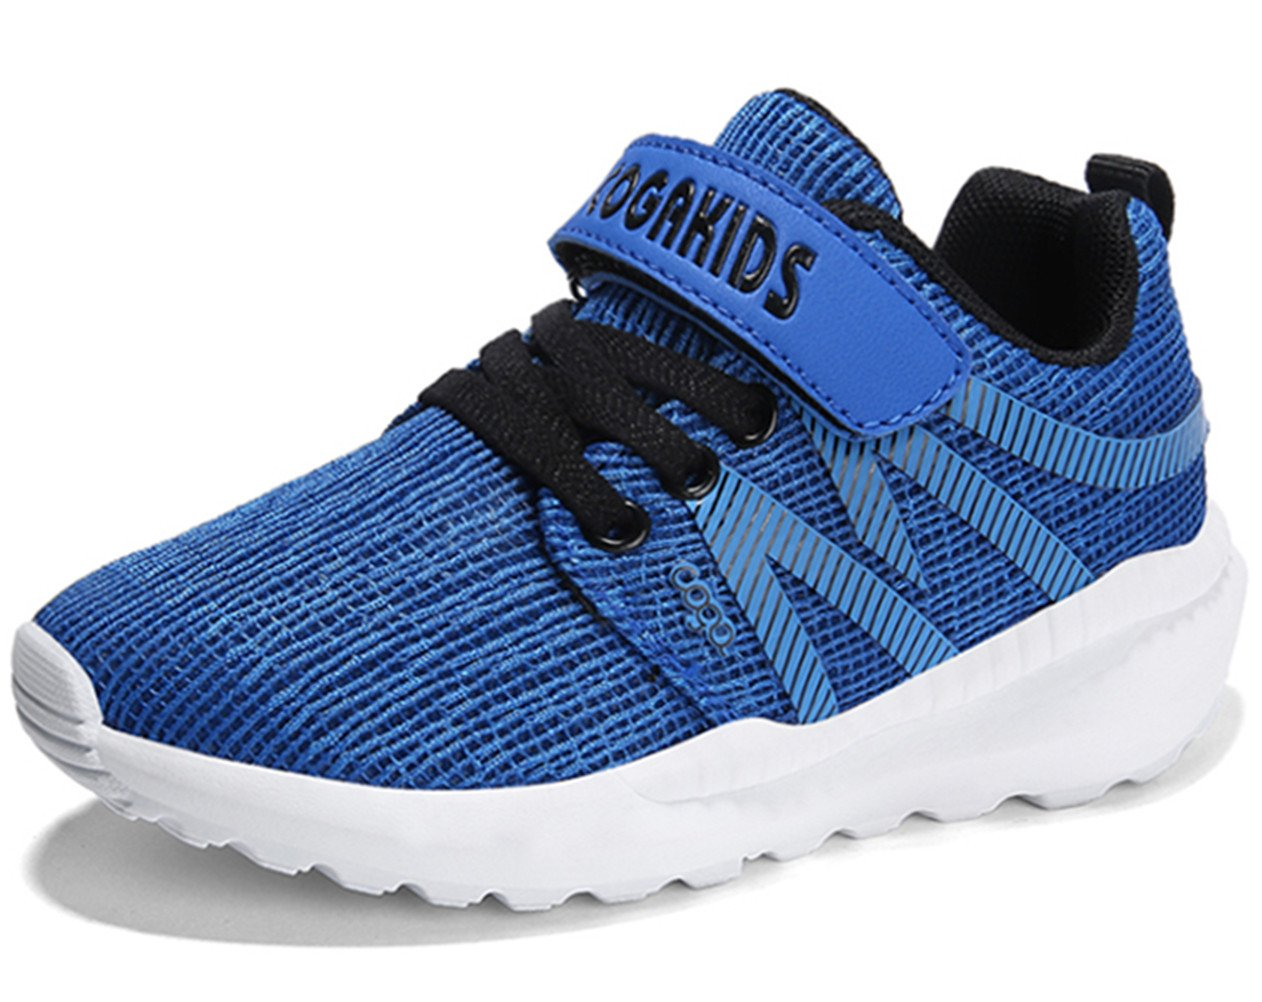 DADAWEN Boy's Girl's Breathable Strap Casual Tennis Athletic Sneakers Running Shoes Blue US Size 4 M Big Kid